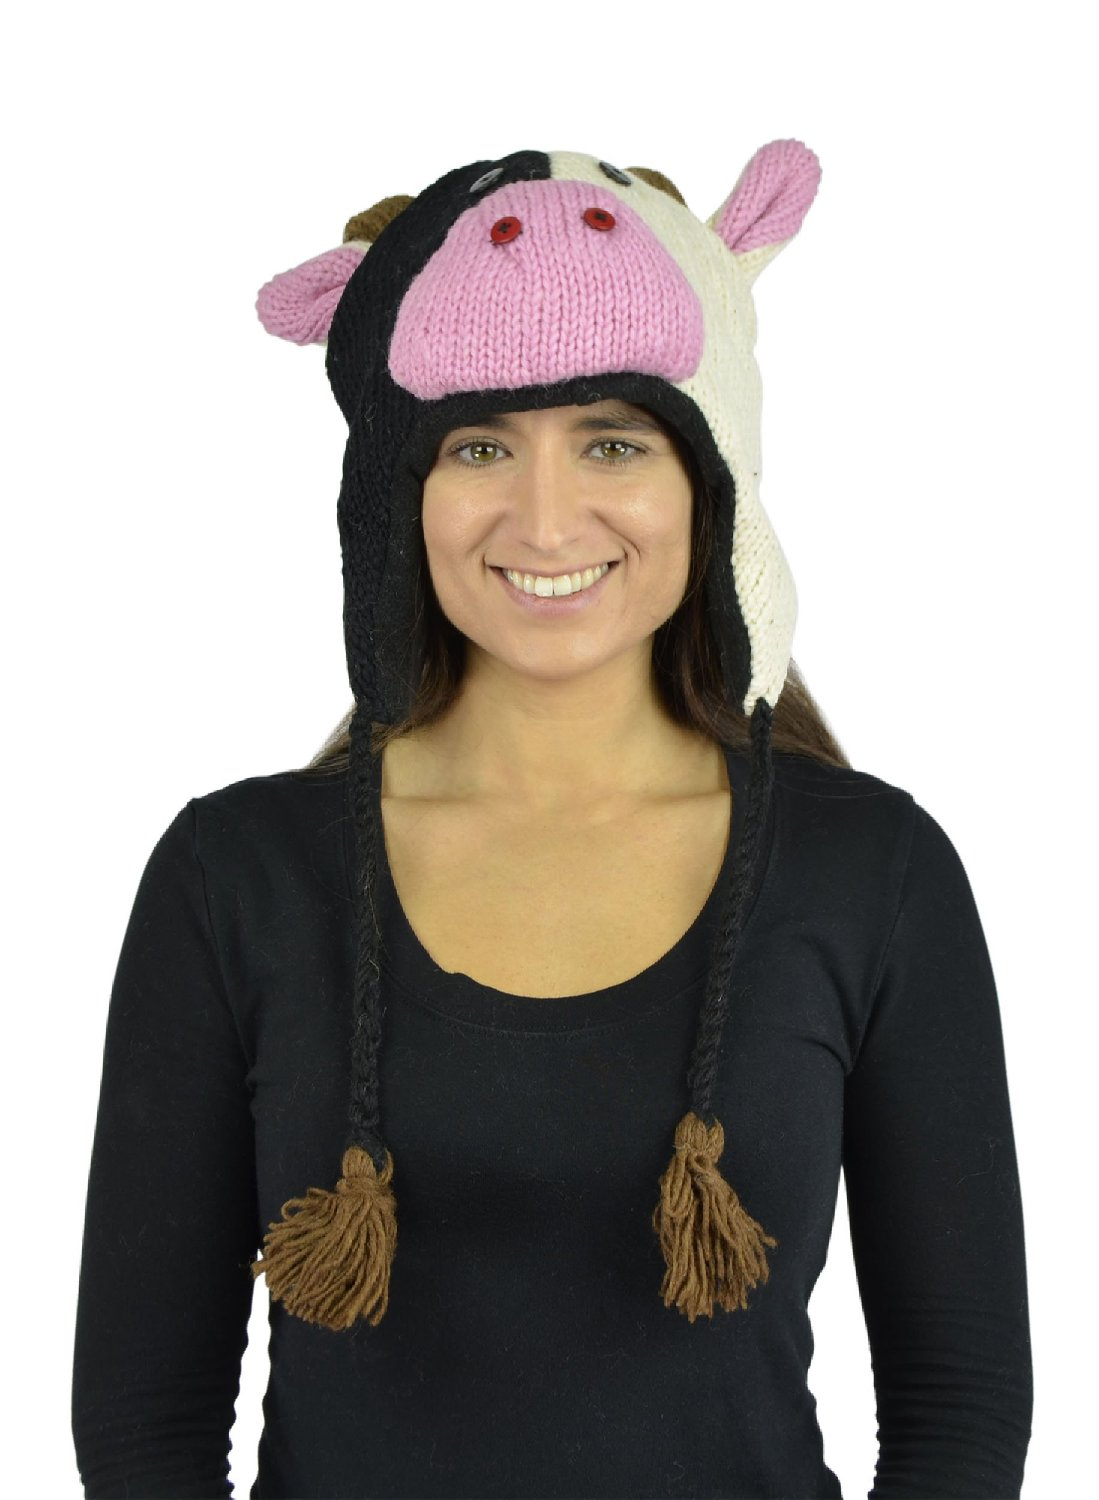 Belle Donne - Unisex Winter Knit Milk Cow Animal Hats With Pom Pom - White